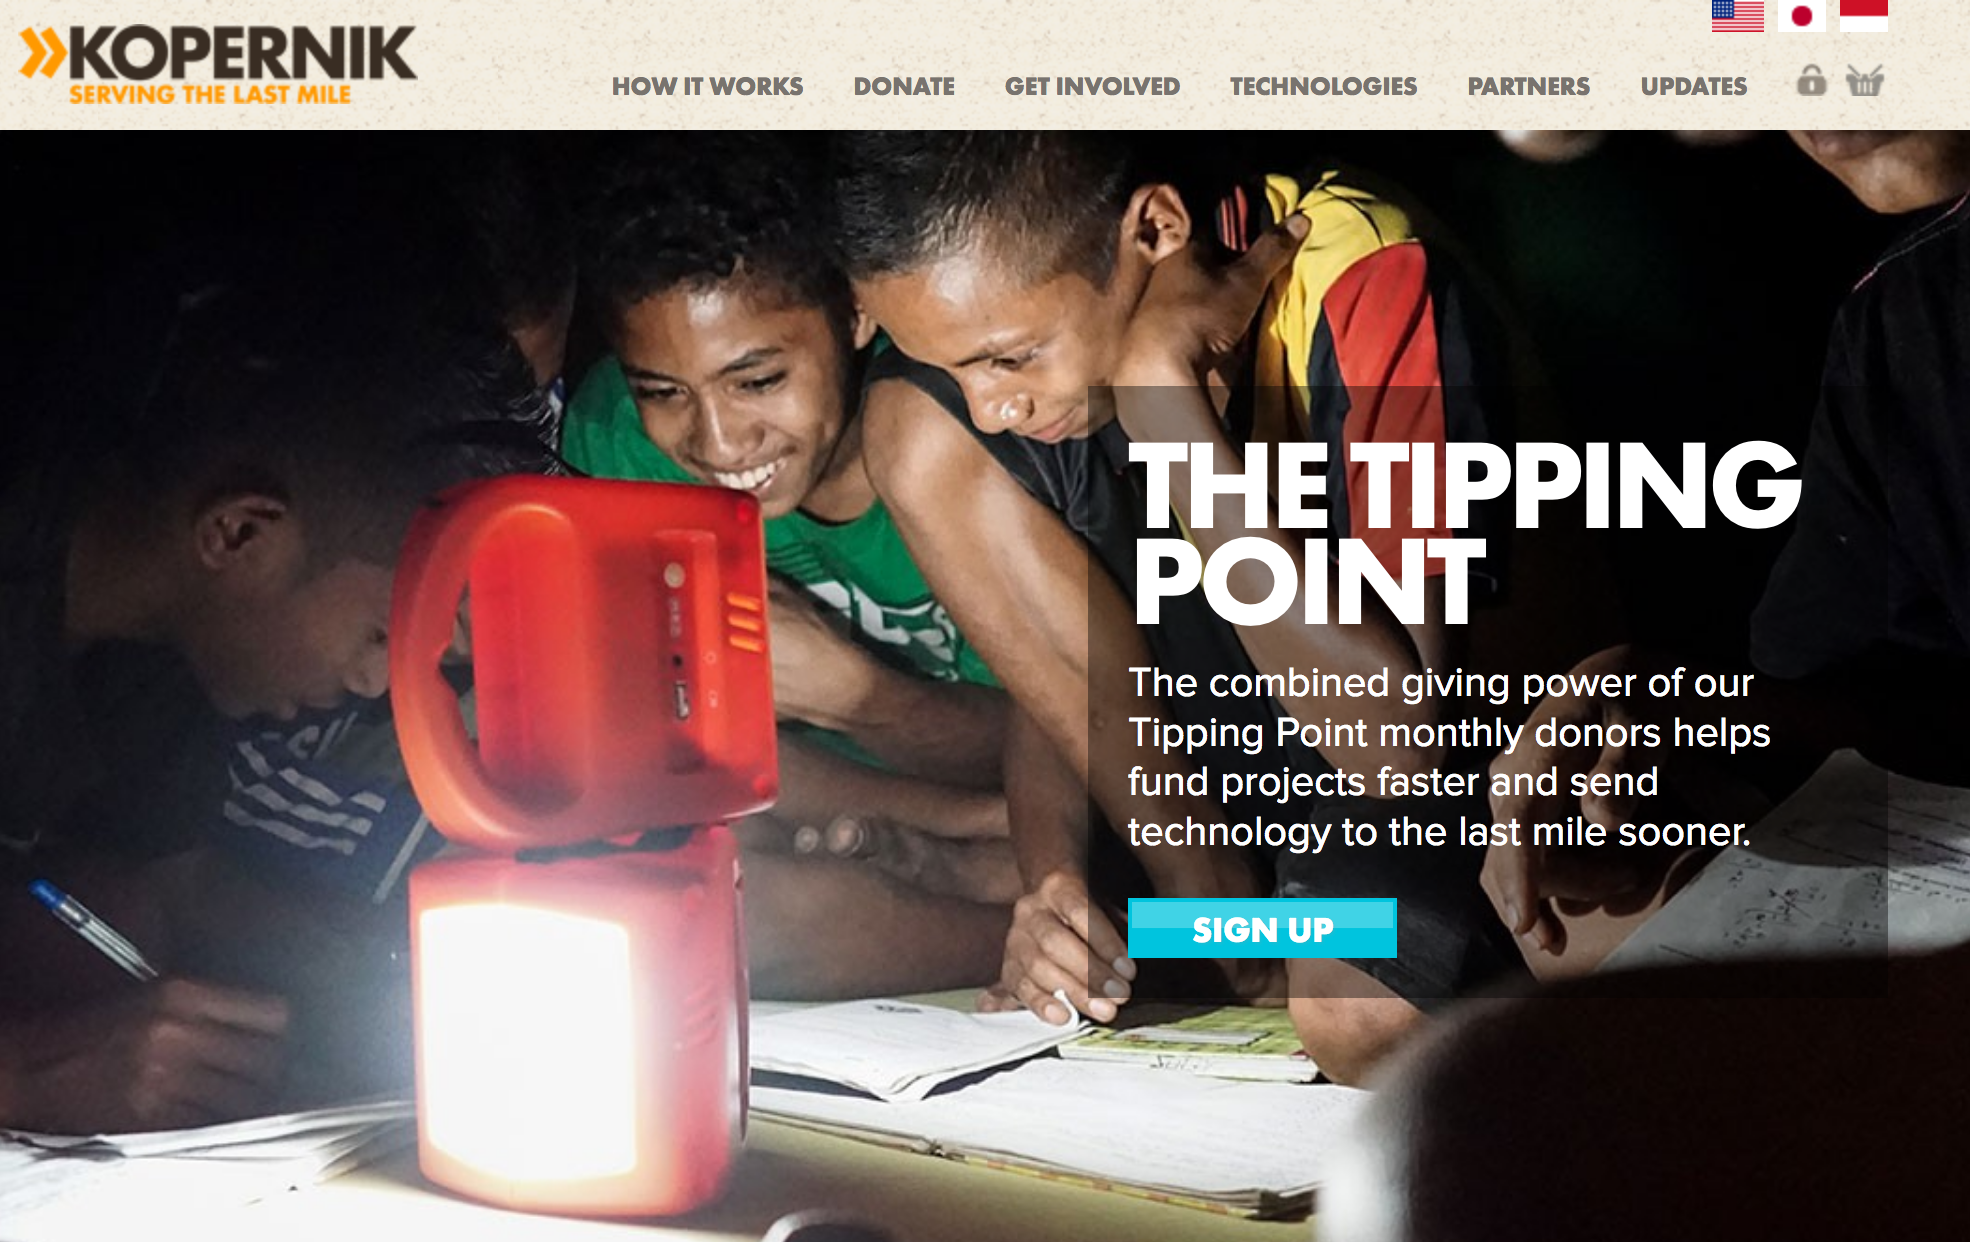 Through partnerships with NGOs like Kopernik we can use MakeItGo to bring the skills and passion of makers around the world to solve real social and environmental problems.